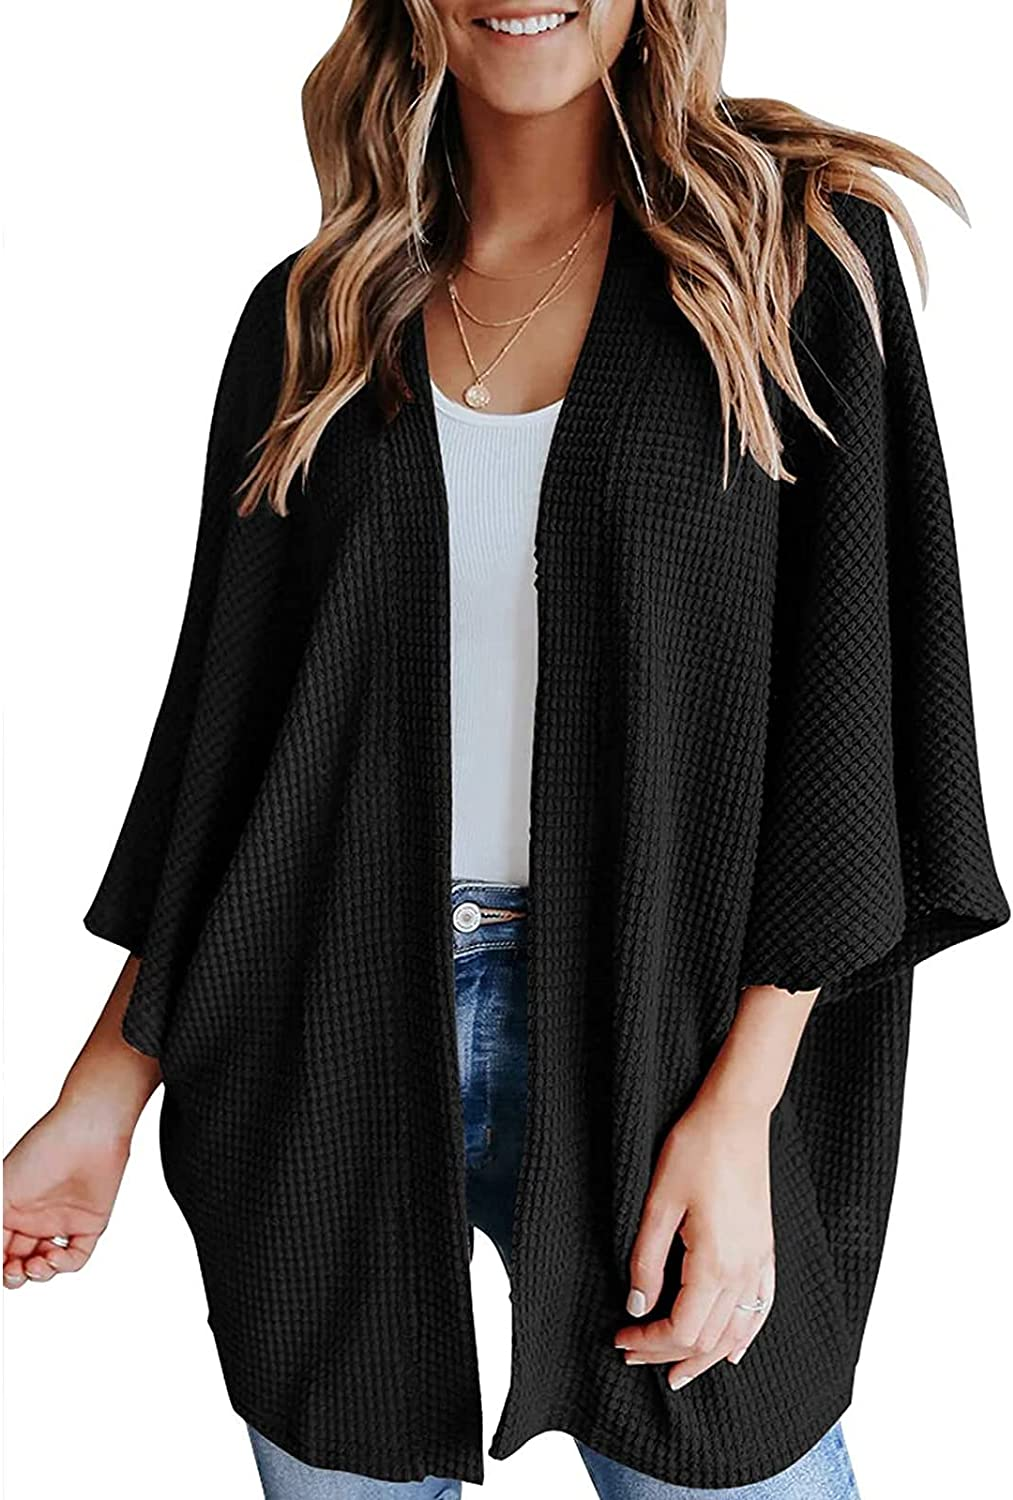 HIFUAR Womens Cardigans Sweater 3/4 Batwing Sleeve Loose Cover Up Lightweight Waffle Knit Open Front Oversized Cardigan